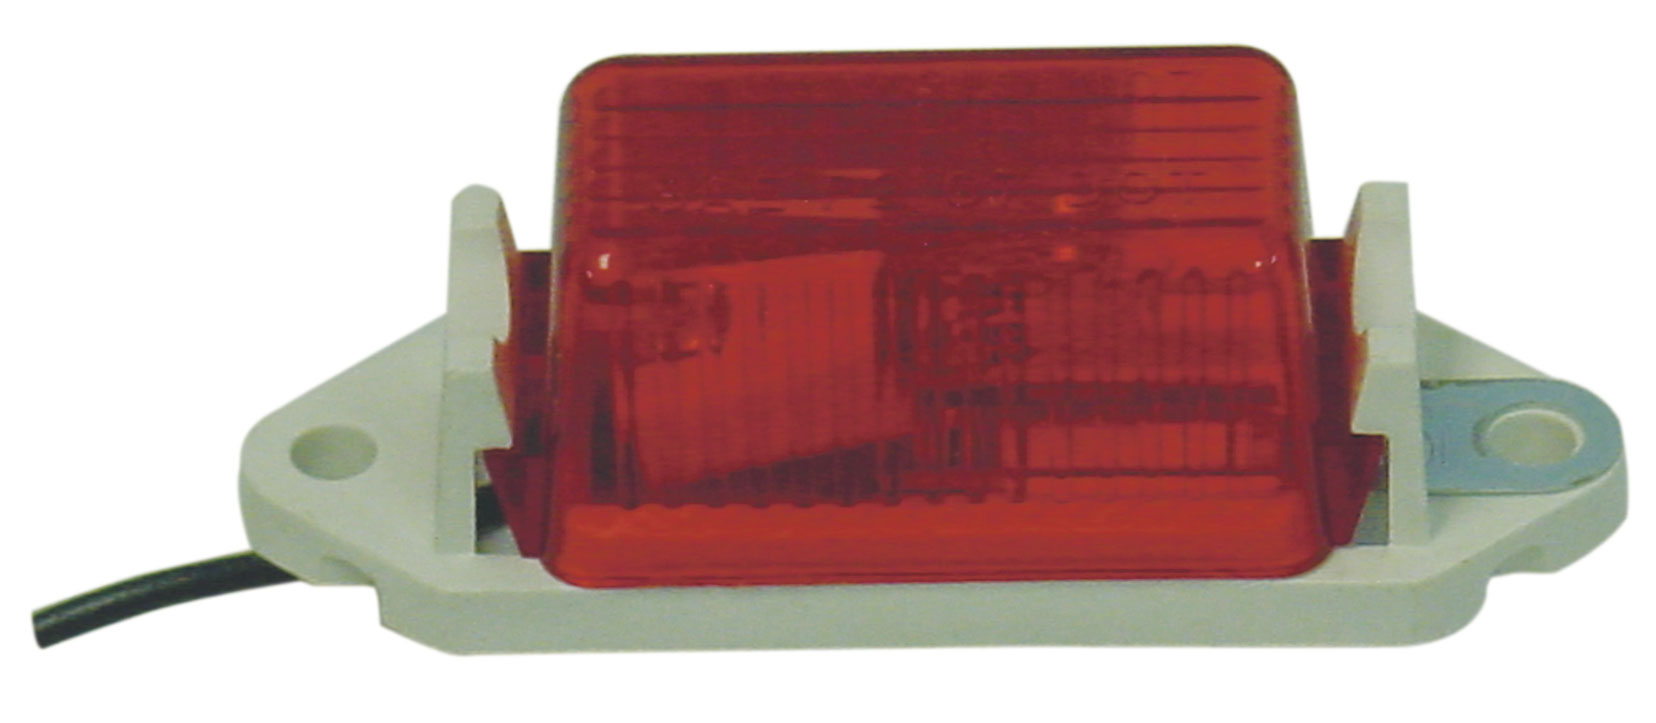 0496110712 - Red 2 Hole Saep2 97 Dot Marker Light